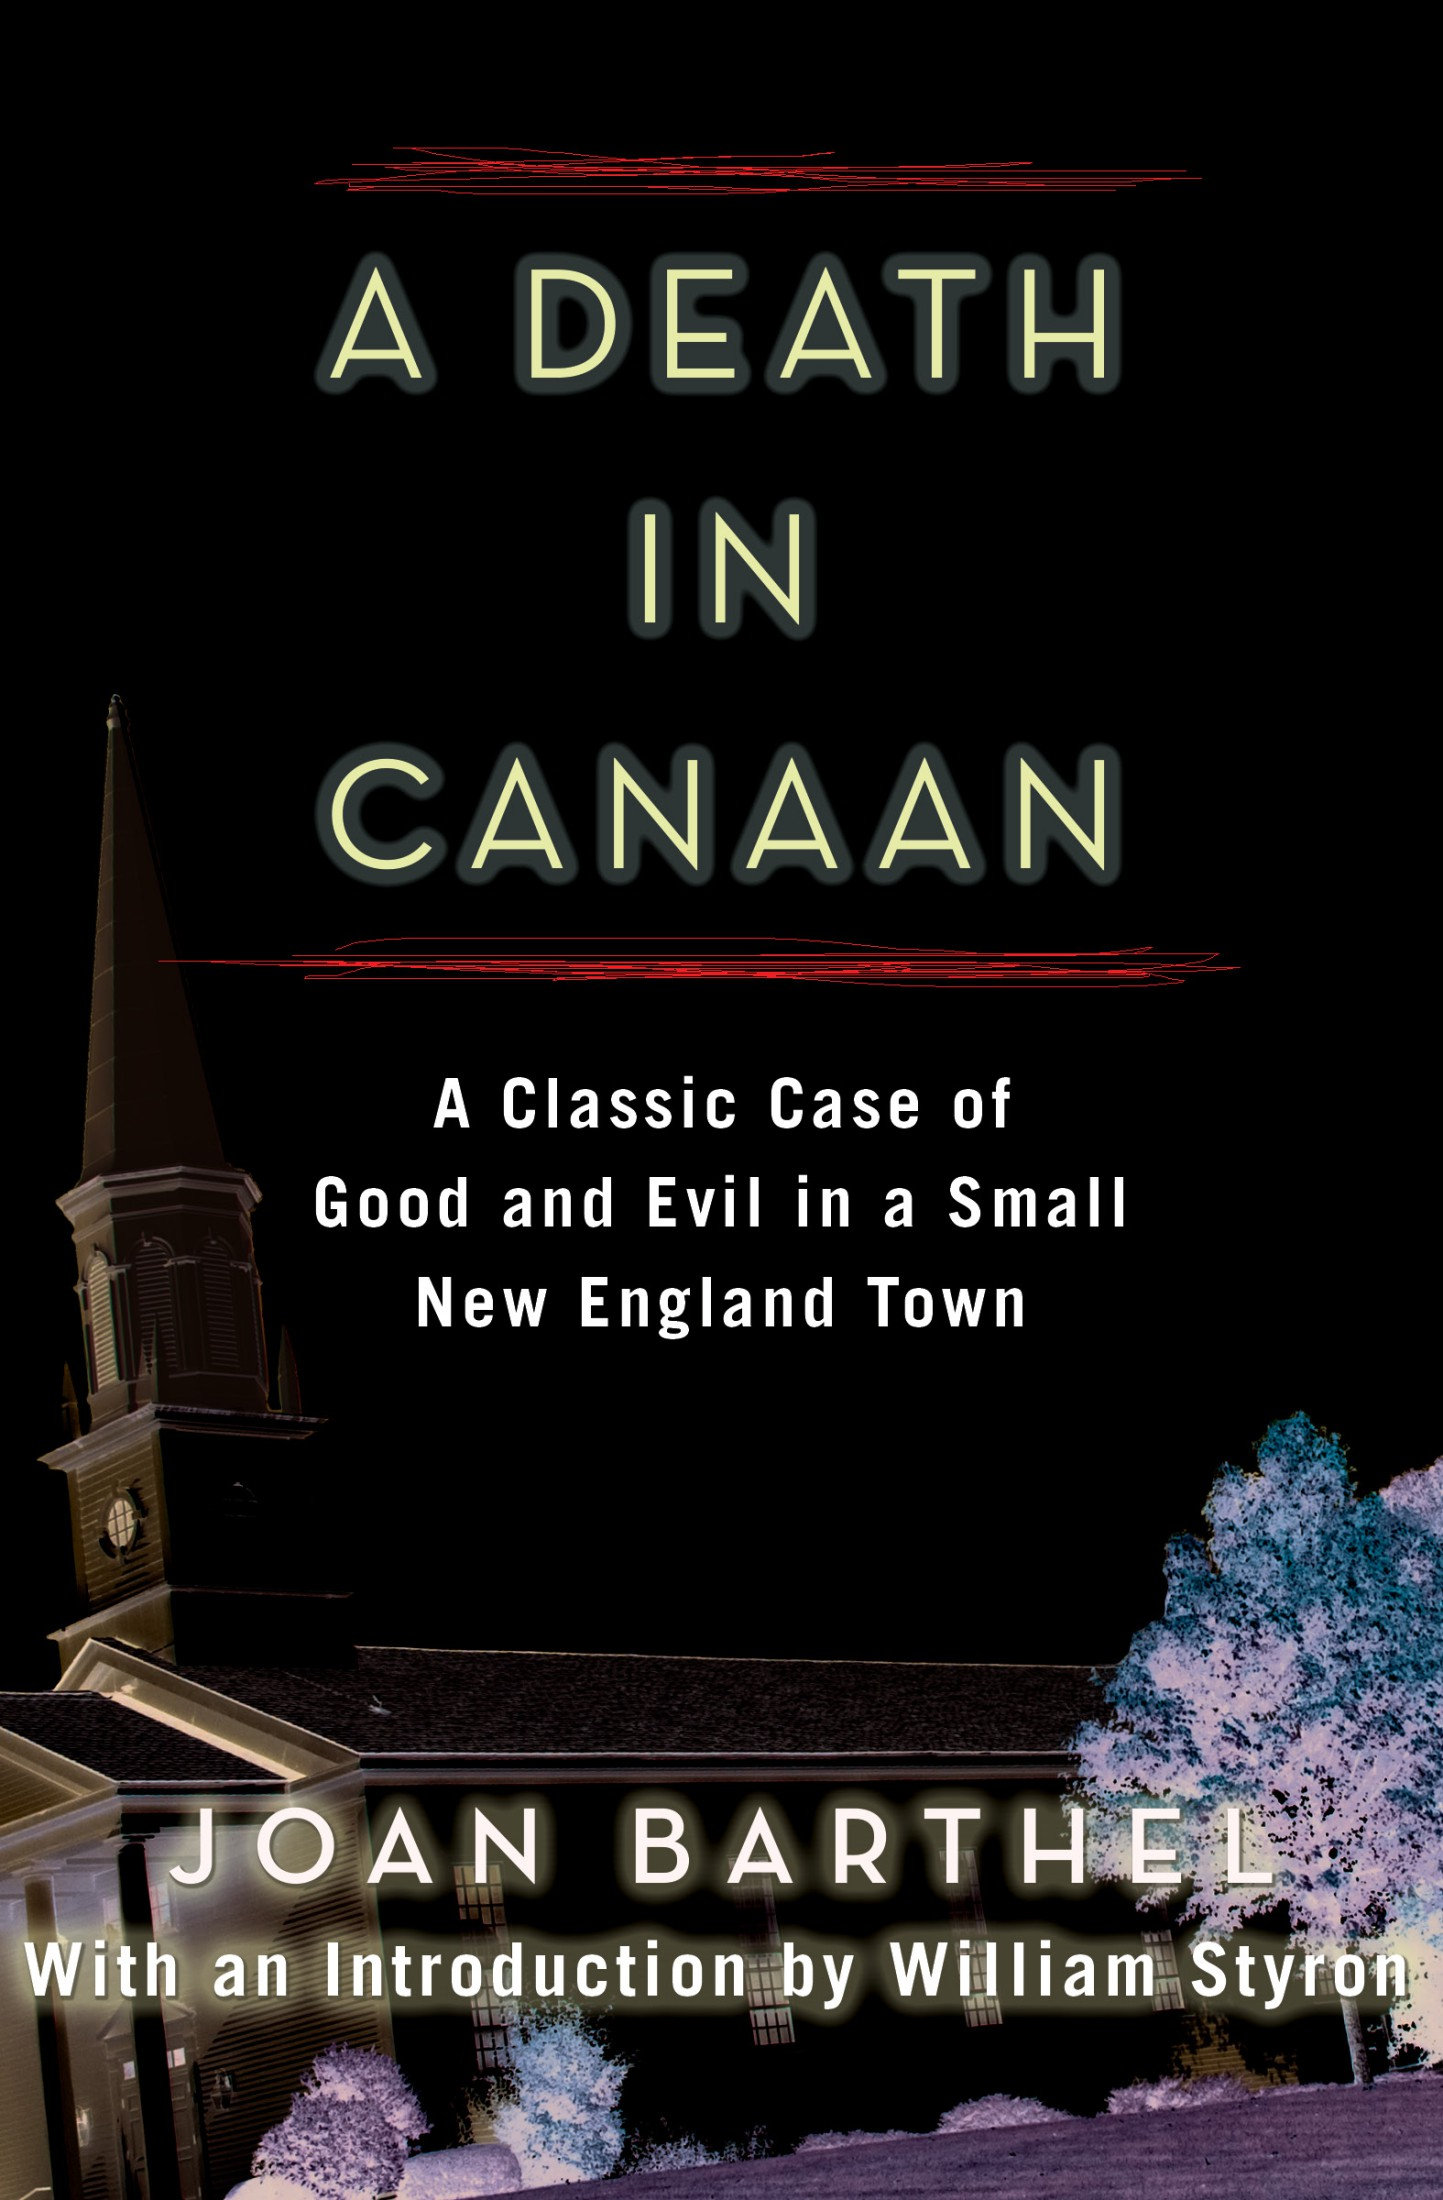 دانلود کتاب A Death in Canaan: A Classic Case of Good and Evil in a Small New England Town [Original retail ed.] 0525704965